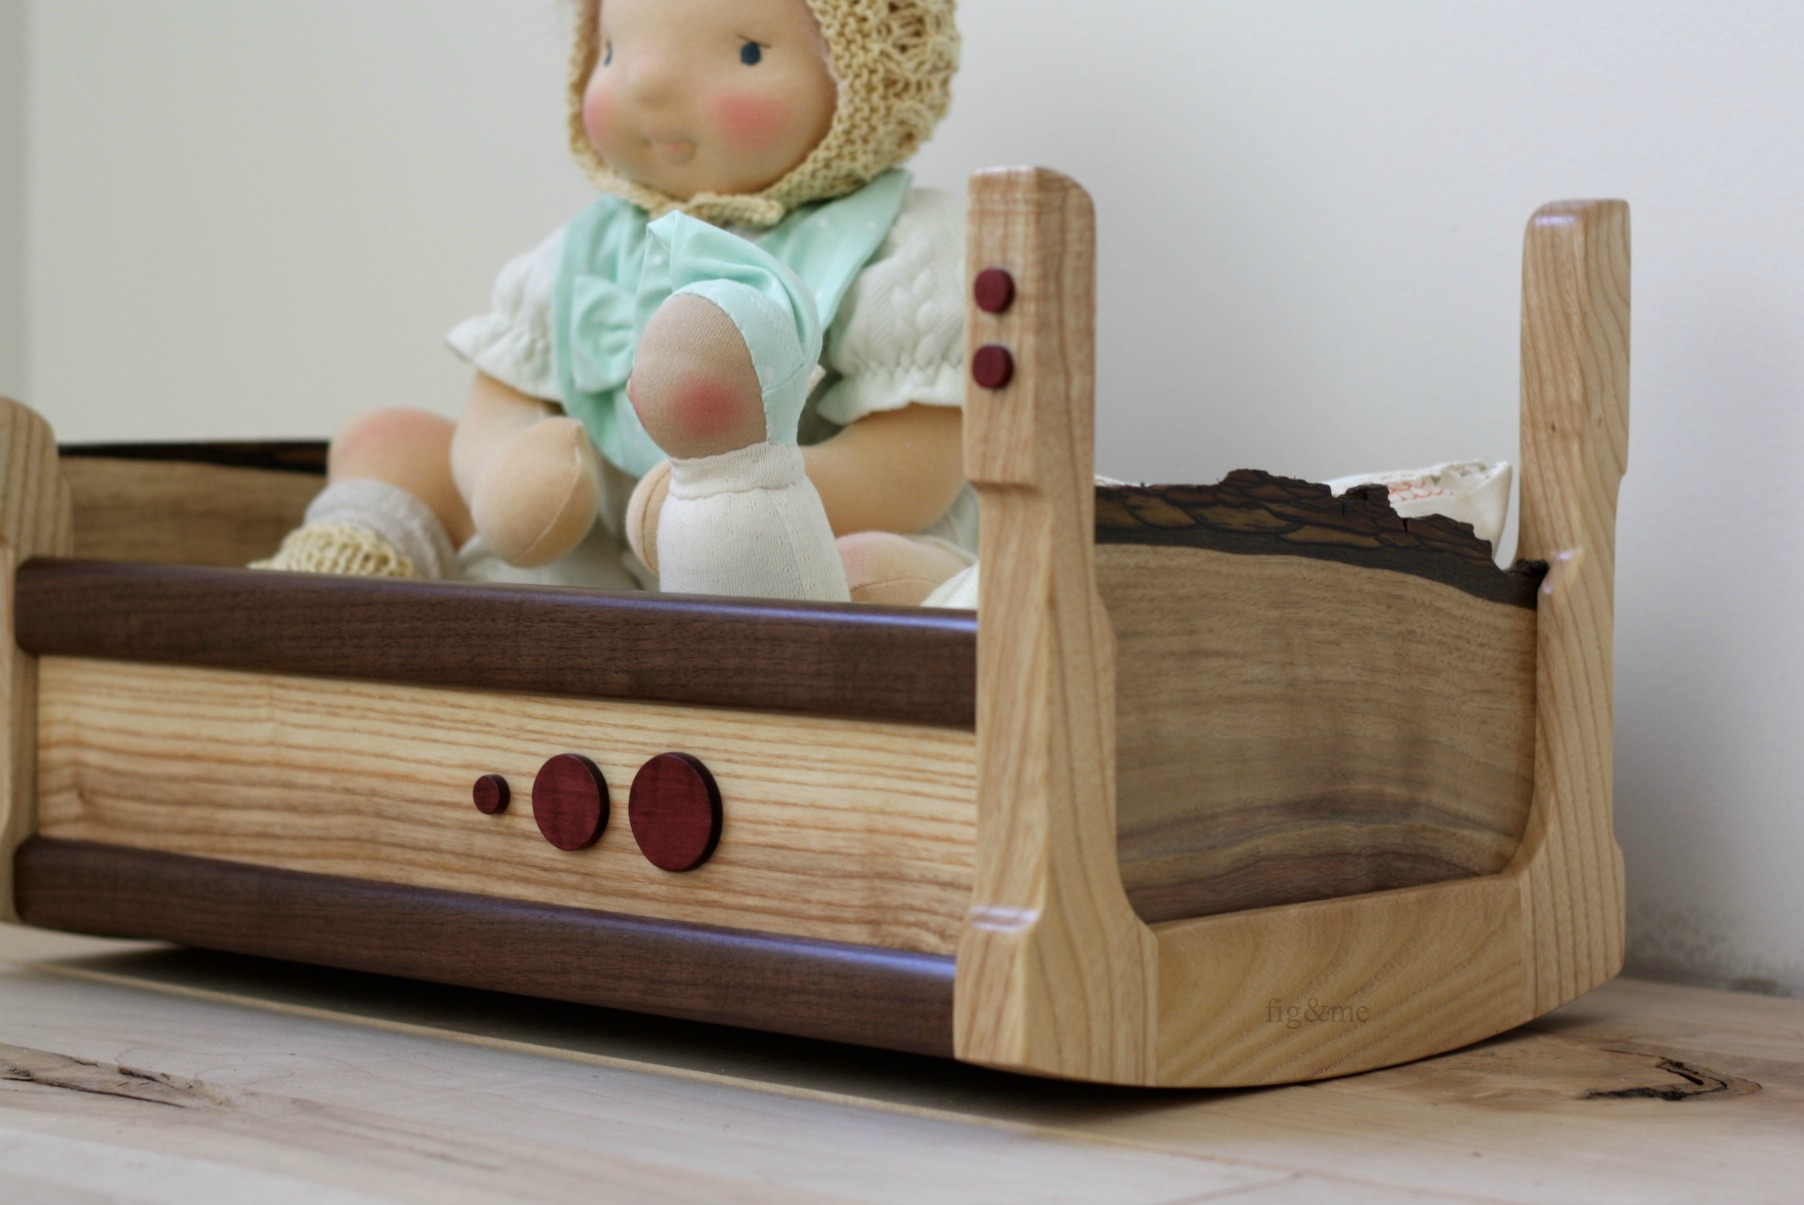 Beautiful Purple-heartdetails on her wooden cradle, by Fig and me